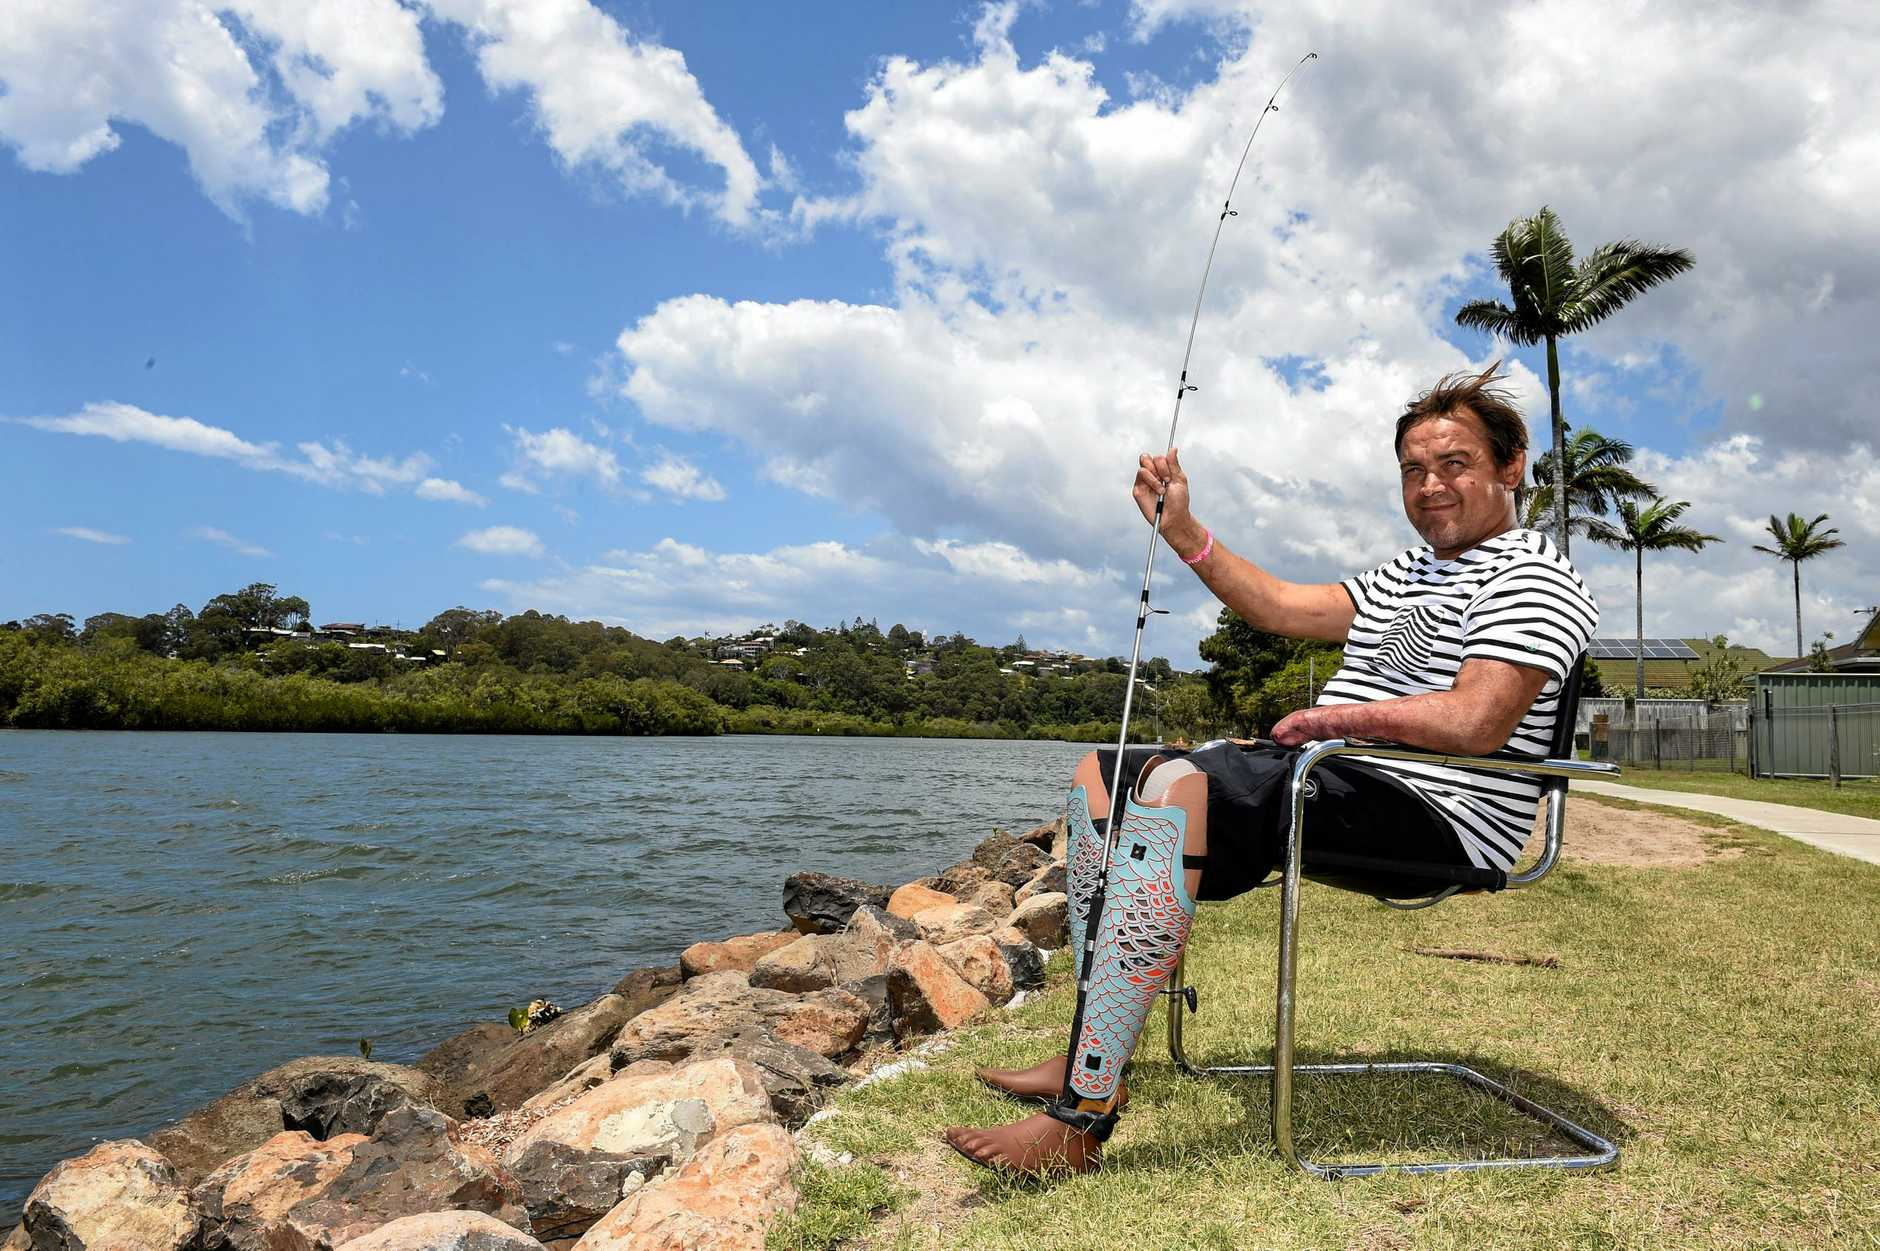 Jason Gall loves spending time fishing in the river behind his Tweed Heads West home.